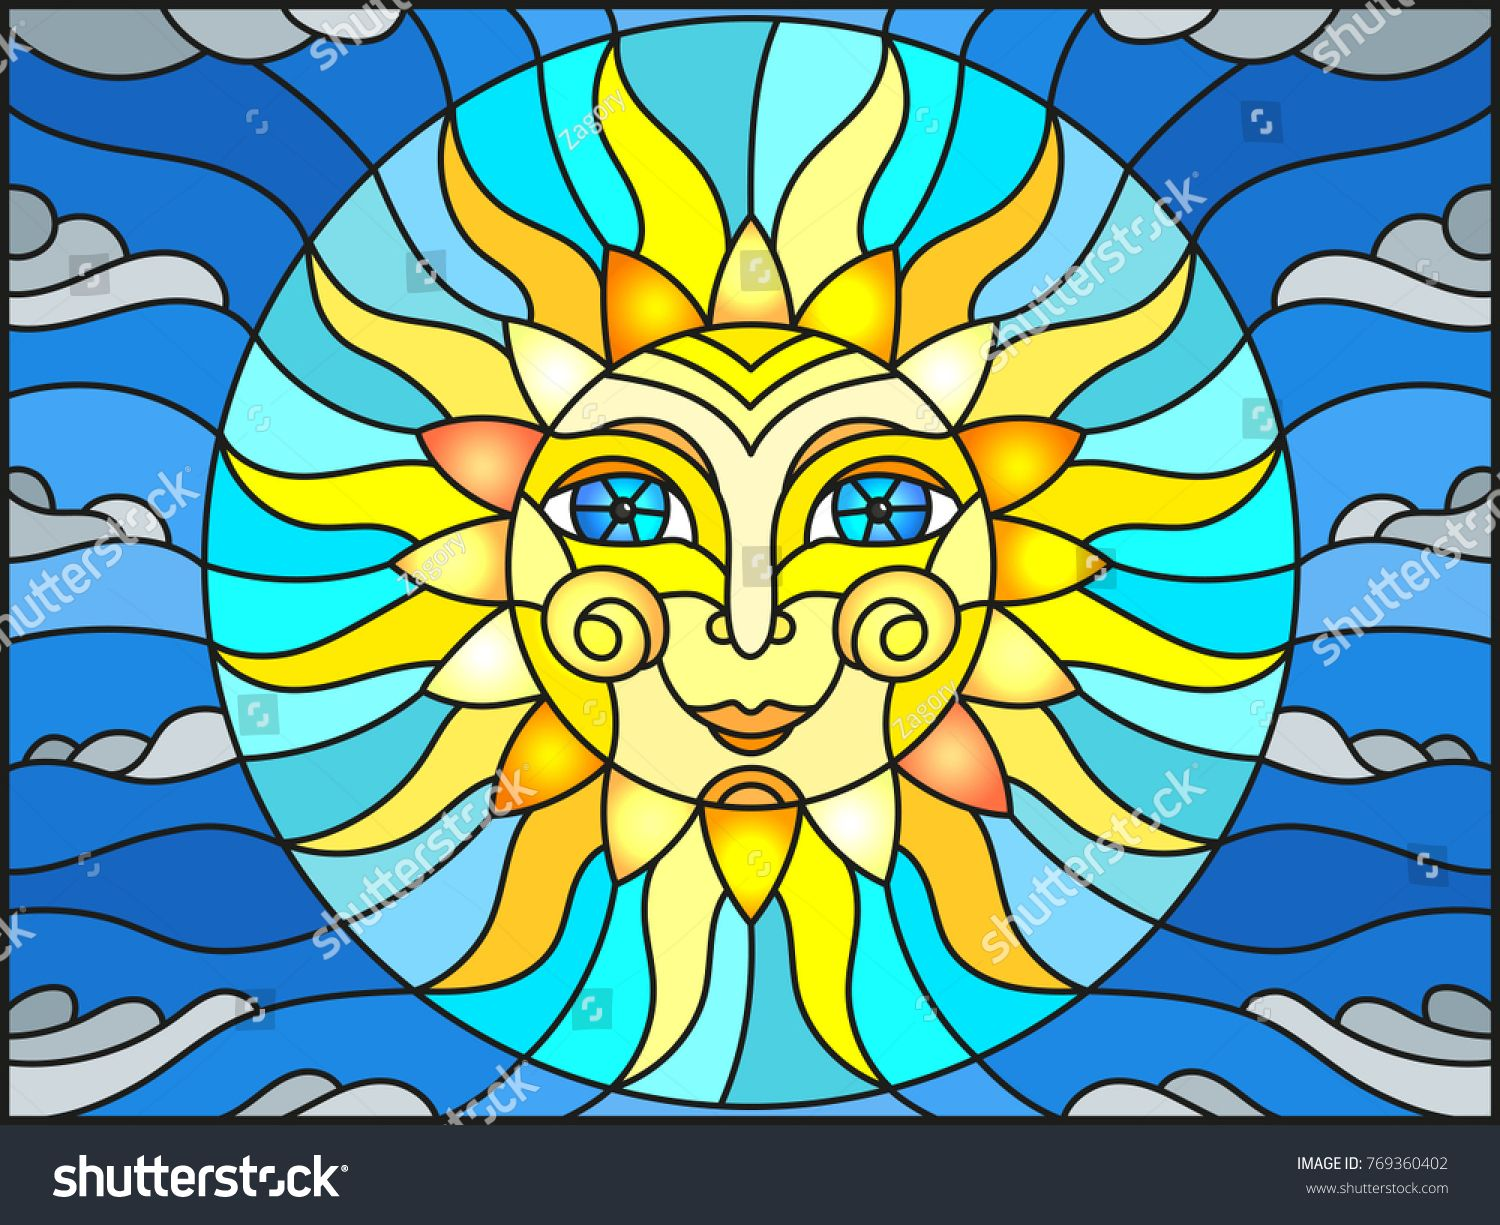 Illustration In Stained Glass Style With Fabulous Sun With The